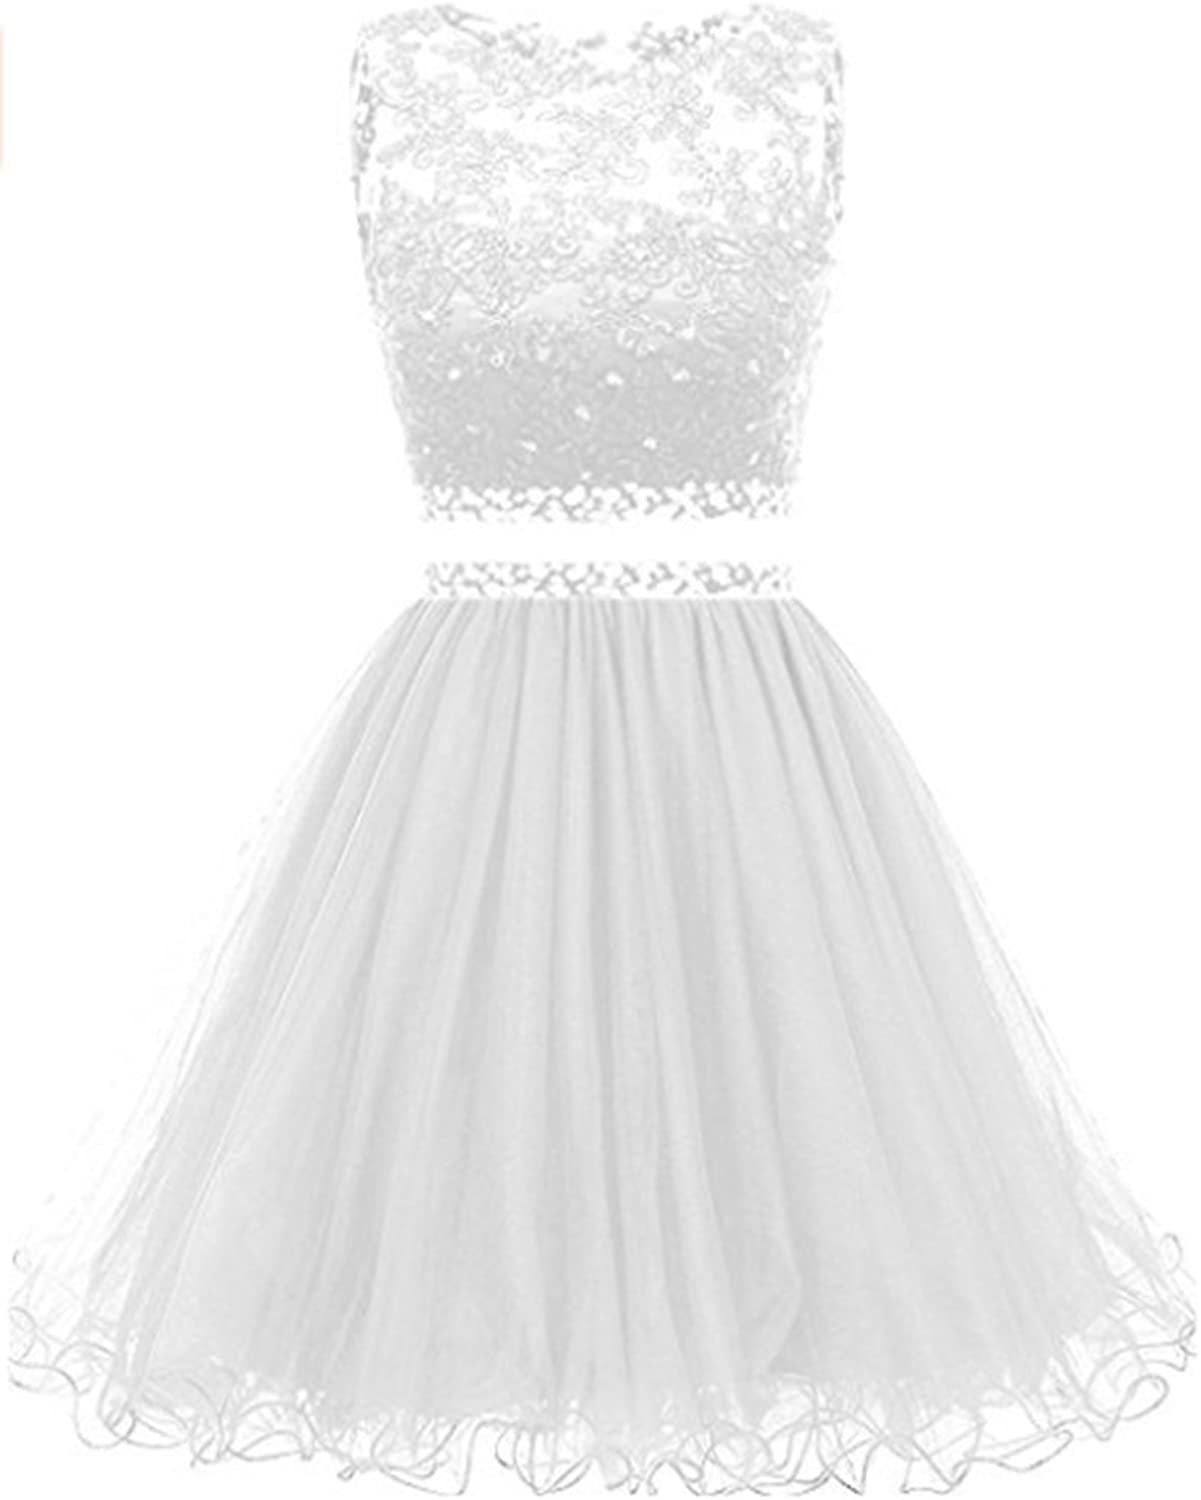 FWVR Womens Lace 2 Piece Prom Dresses Short For Juniors Beaded Homecoming Party